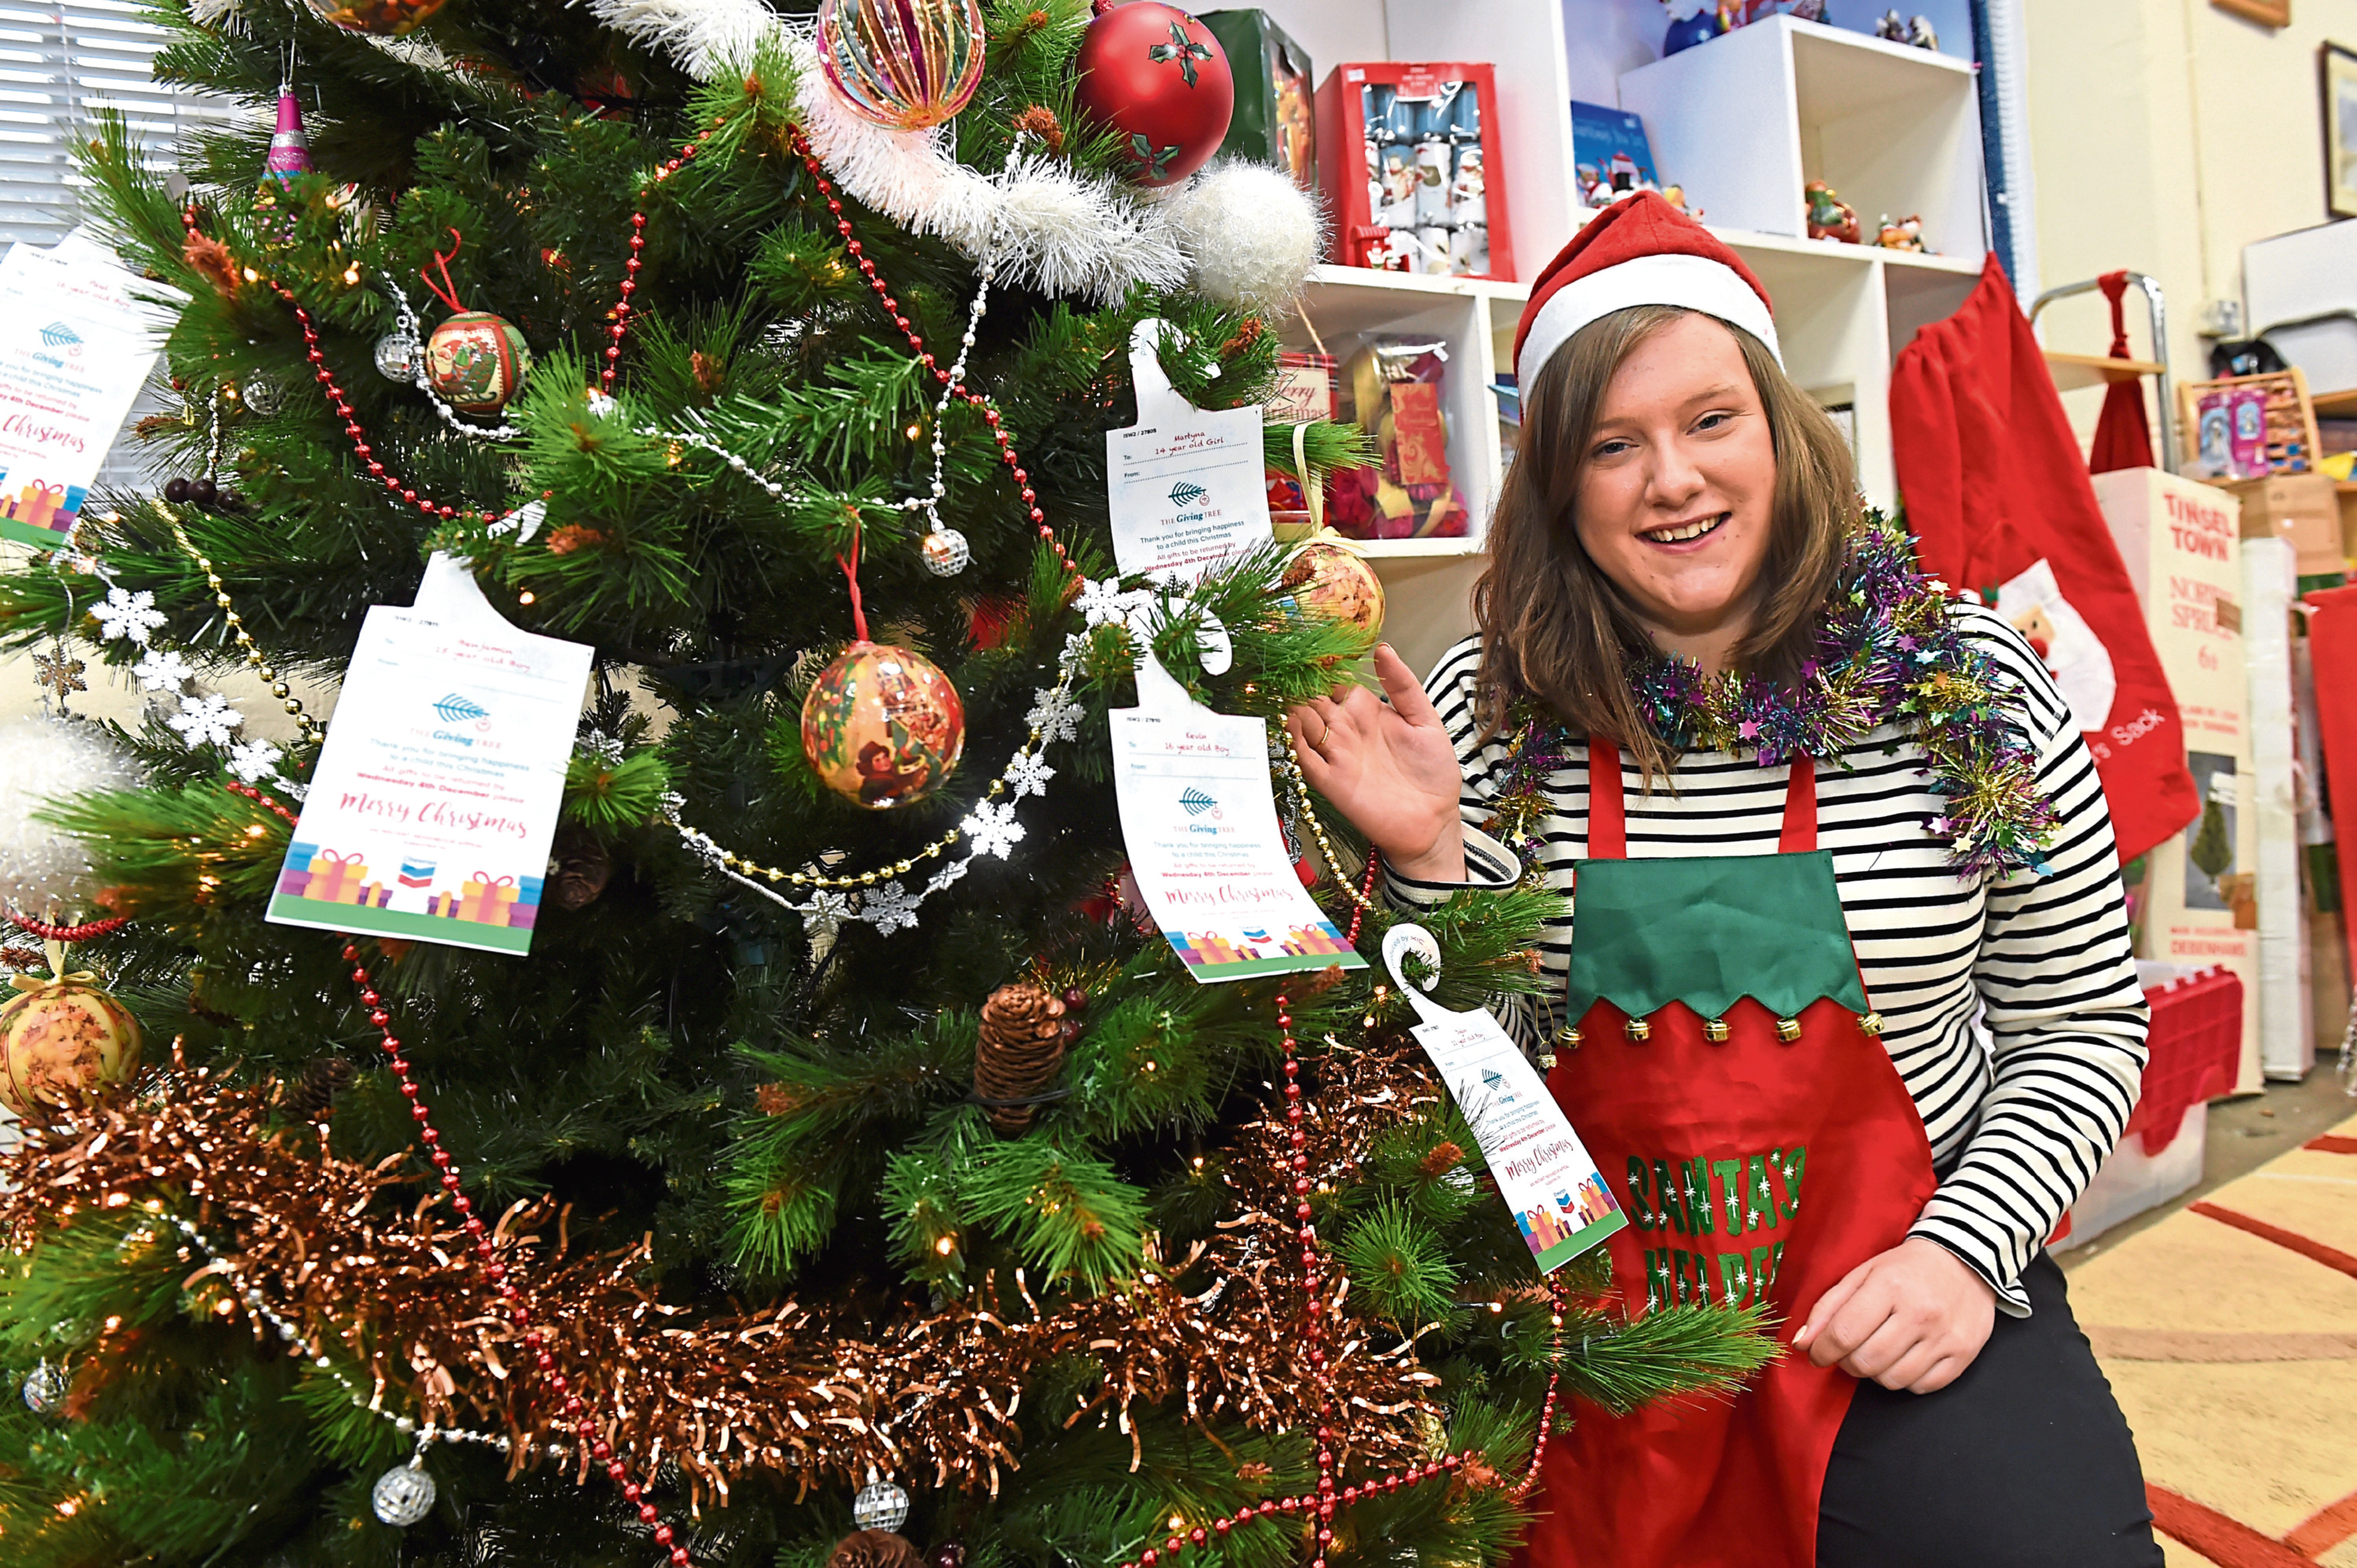 Instant Neighbour are appealing for a business to come forward and let them use an empty office space or the like to sort Christmas presents donated as part of their Giving Tree campaign. Picture by Kenny Elrick